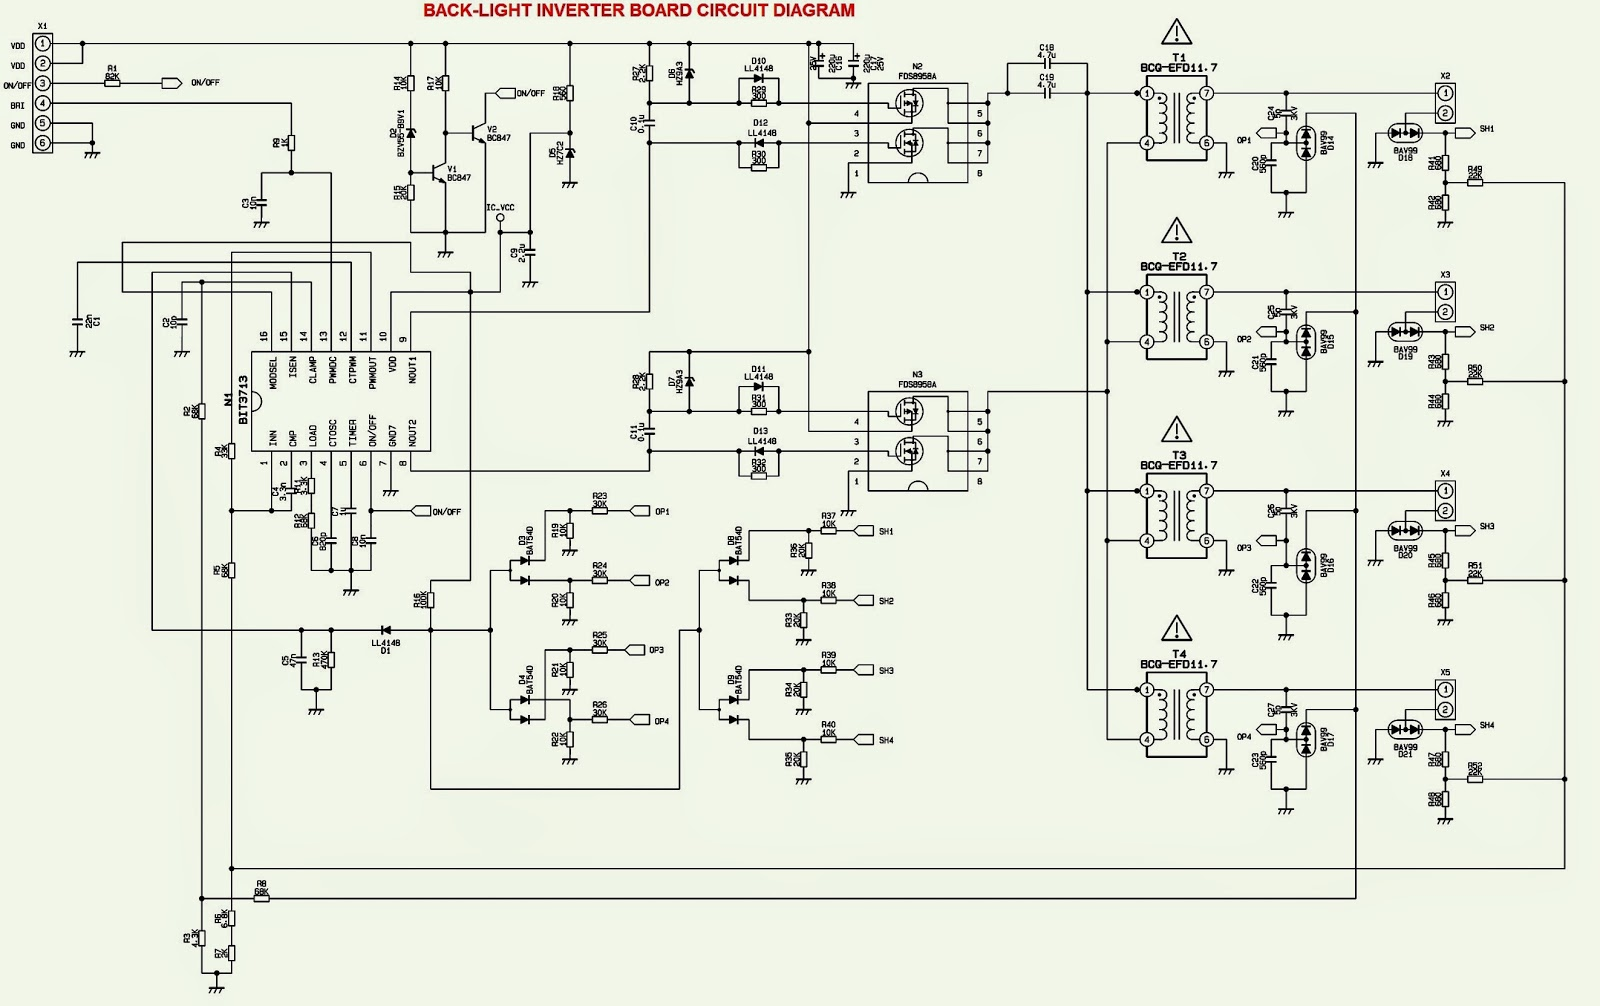 hight resolution of back light inverter schematic